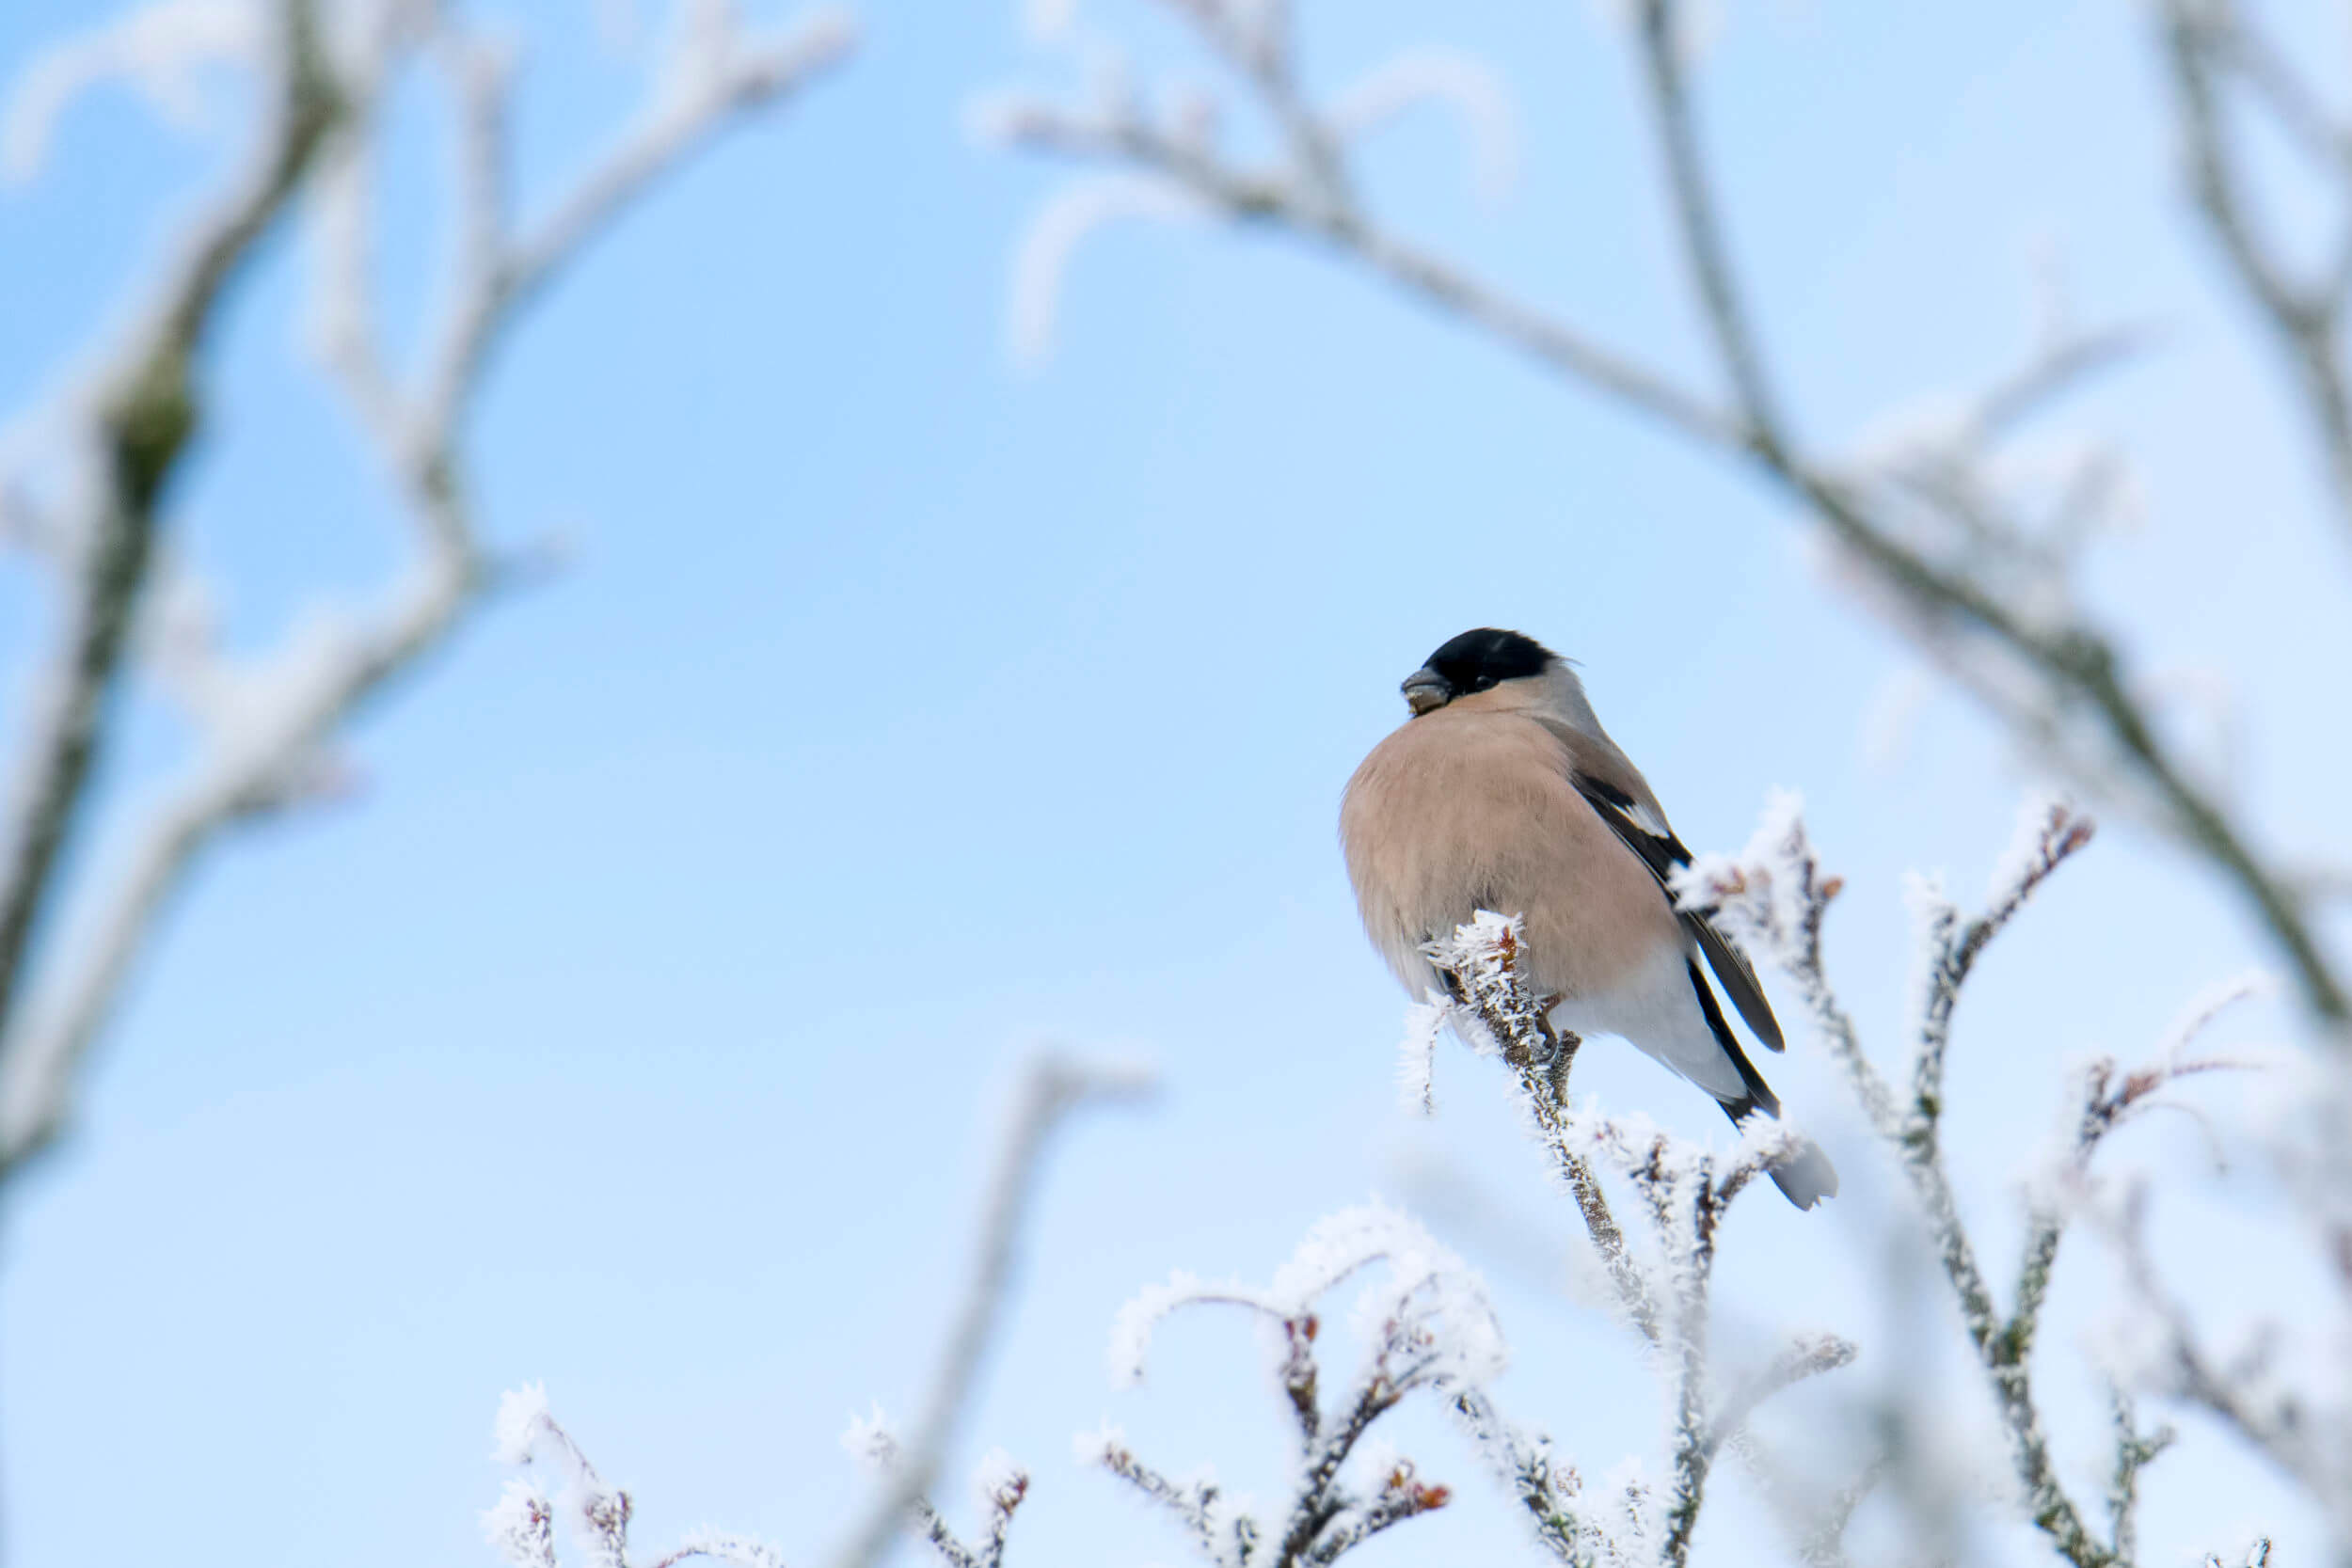 bird Bullfinch, Pyrrhula Pyrrhula, Gil - Artur Rydzewski photo gallery and blog